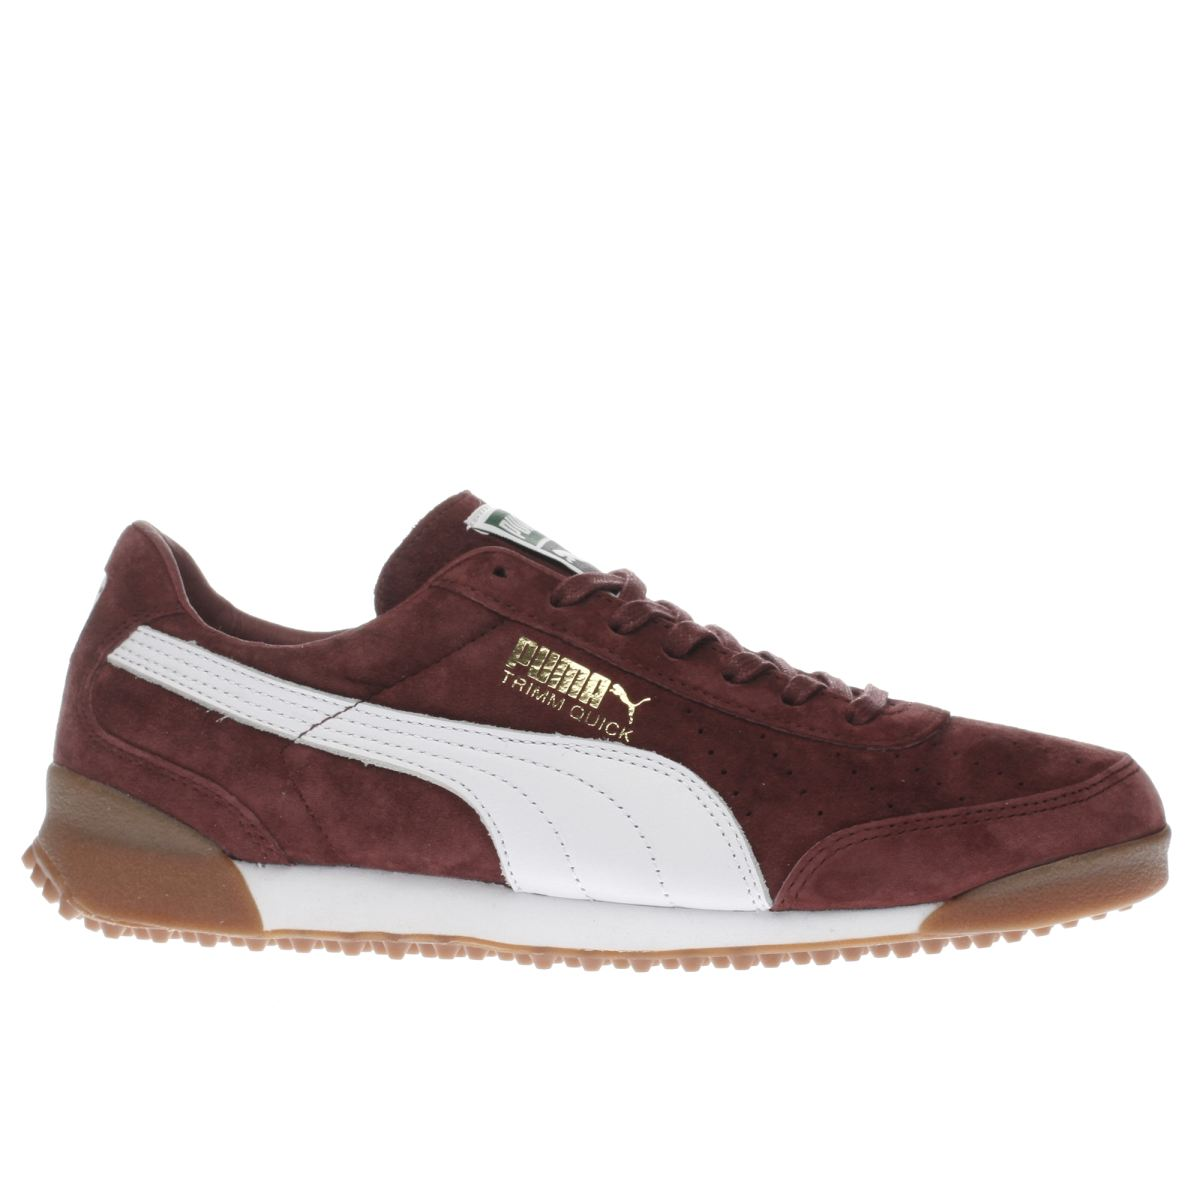 puma burgundy trimm quick trainers